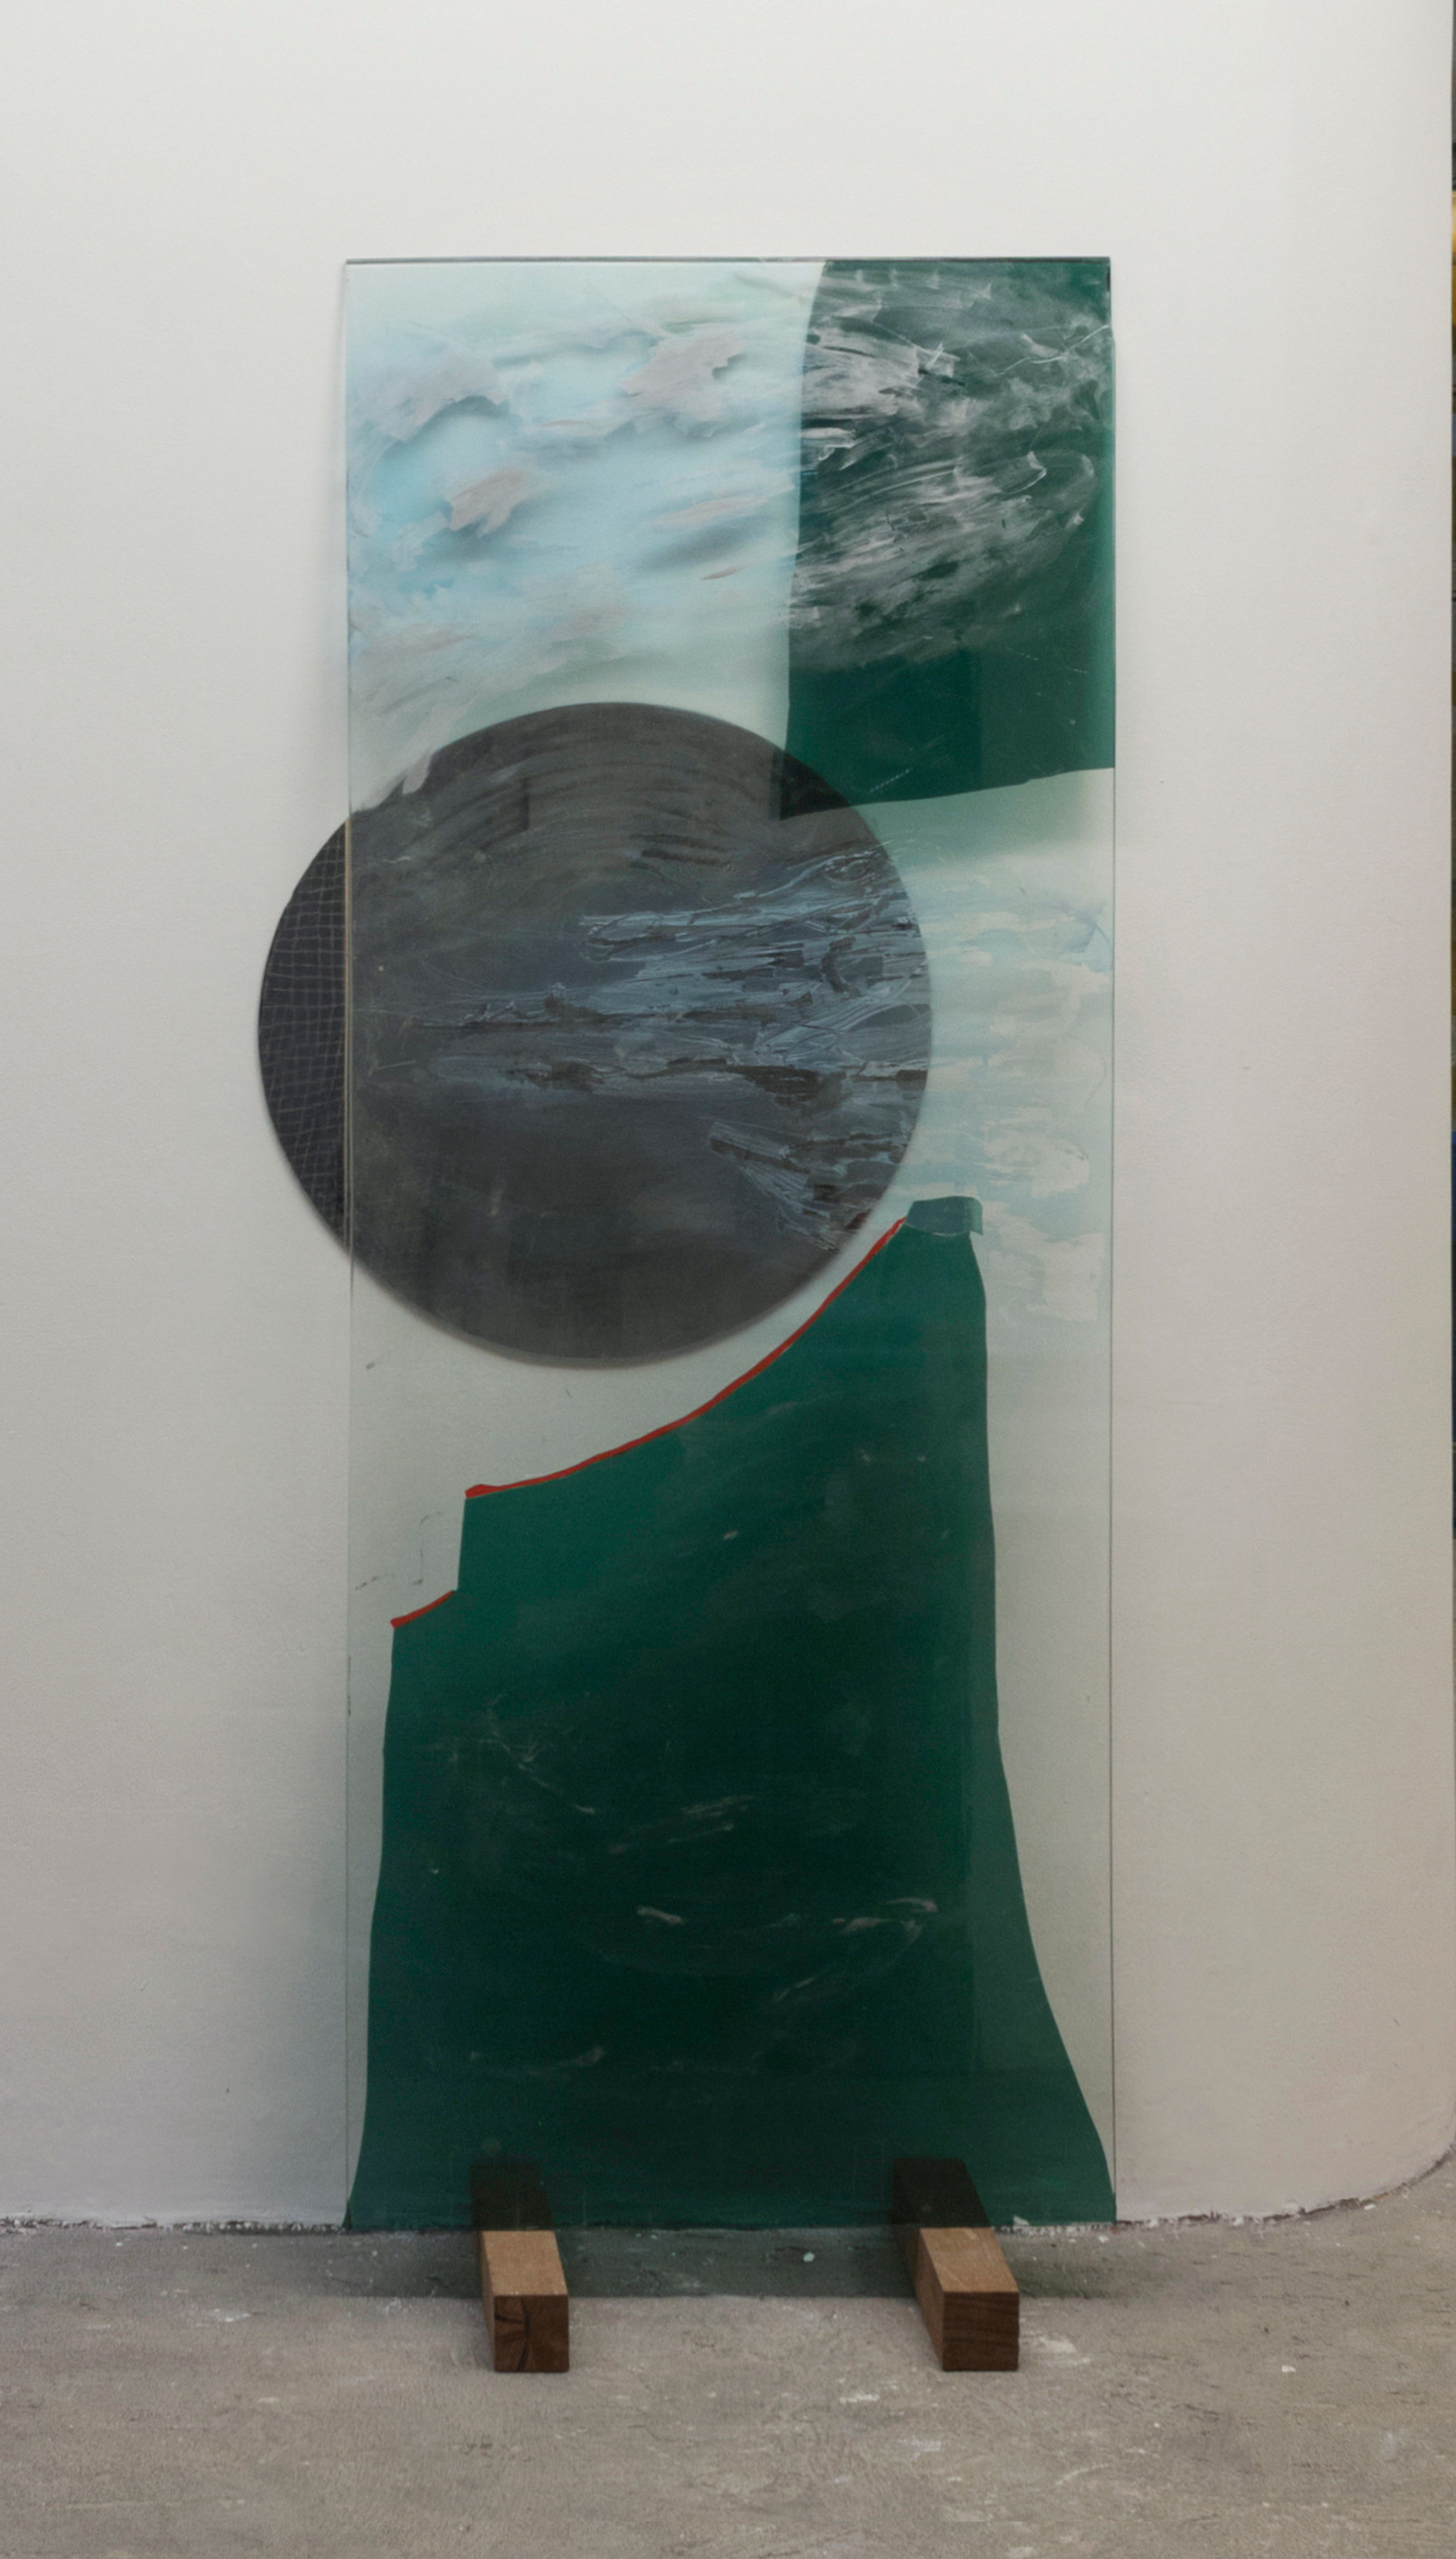 Peak, 2018 | Glass, Enamel and insulfilm on glass and mirror | 208 x 90 cm